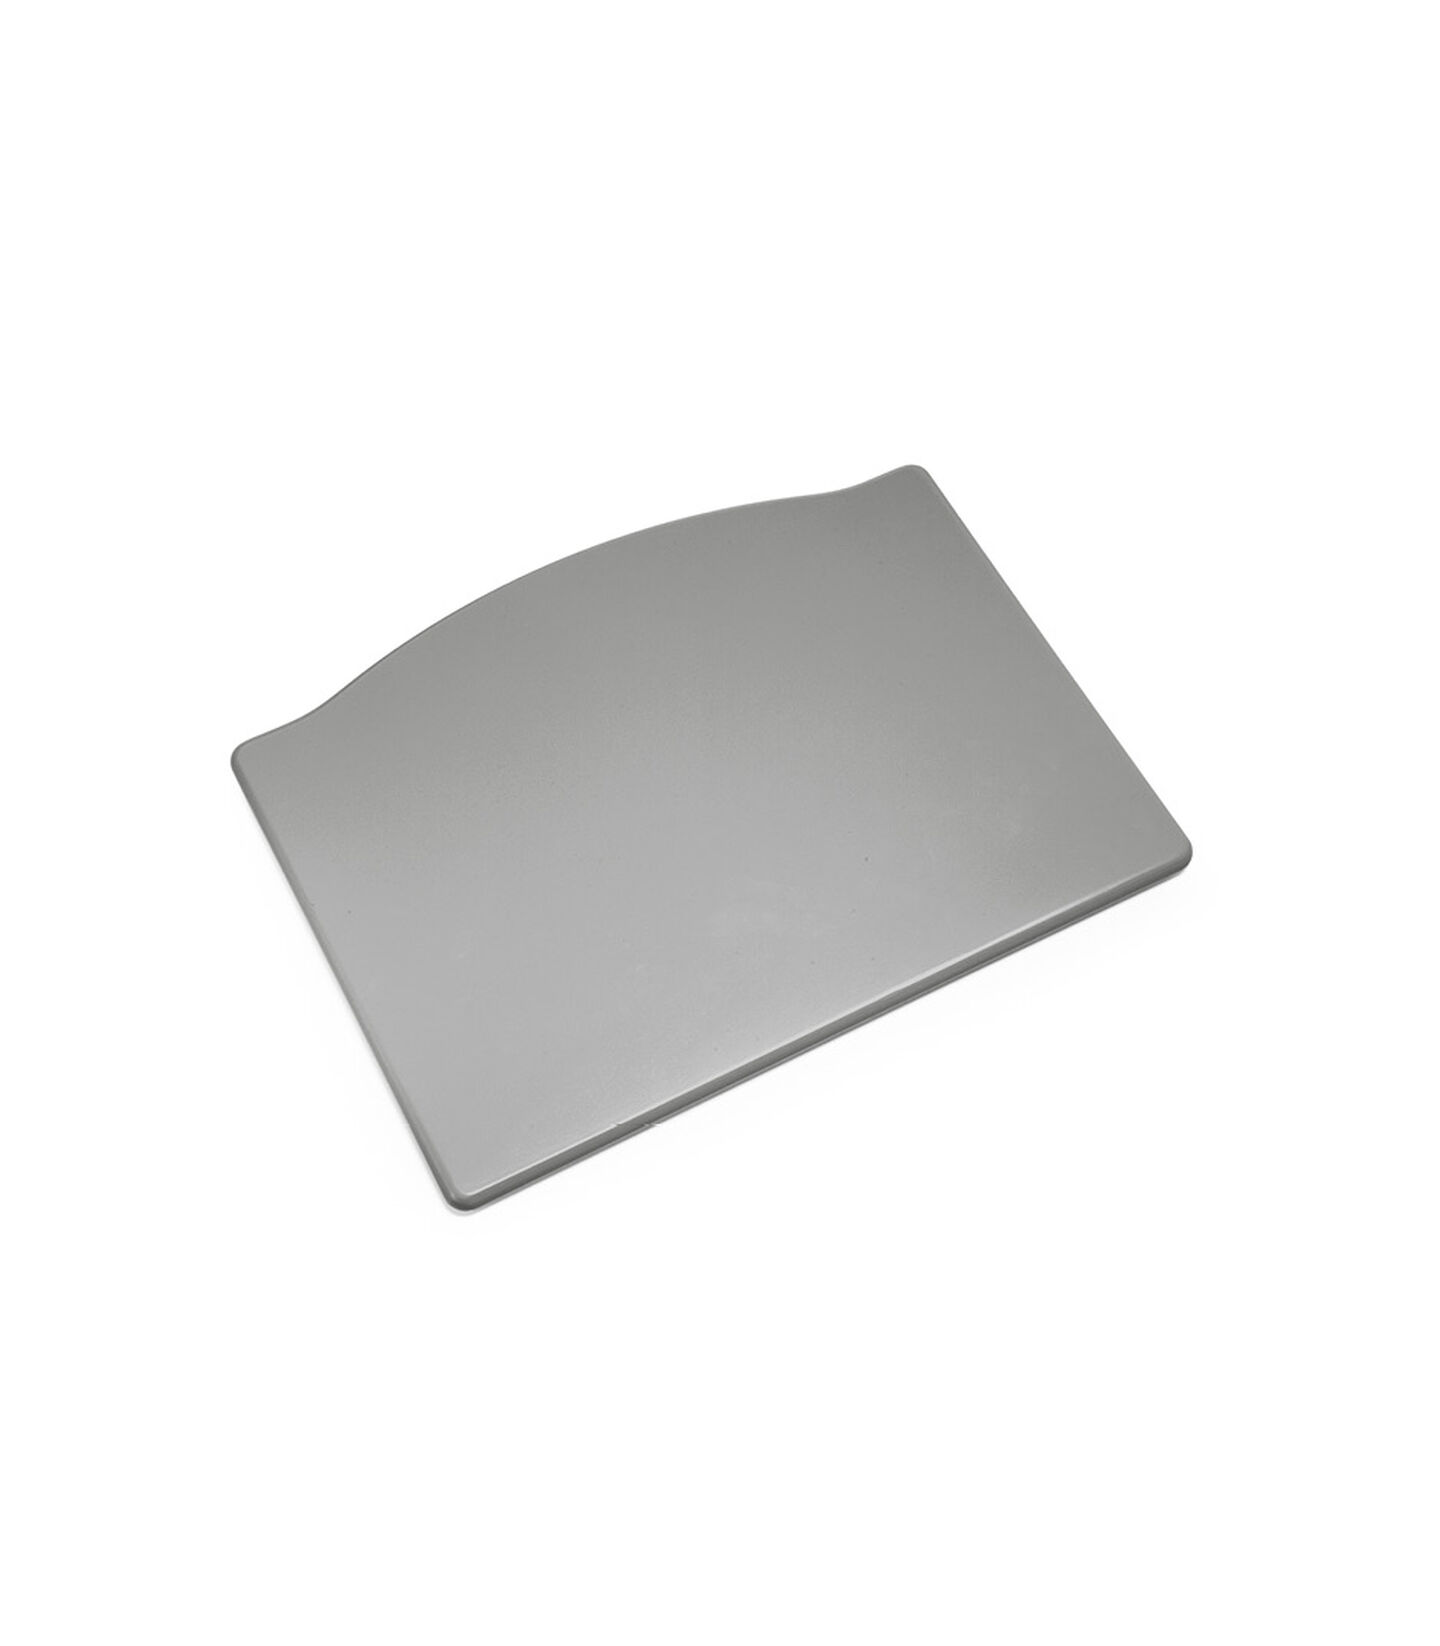 108928 Tripp Trapp Foot plate Storm grey (Spare part). view 1